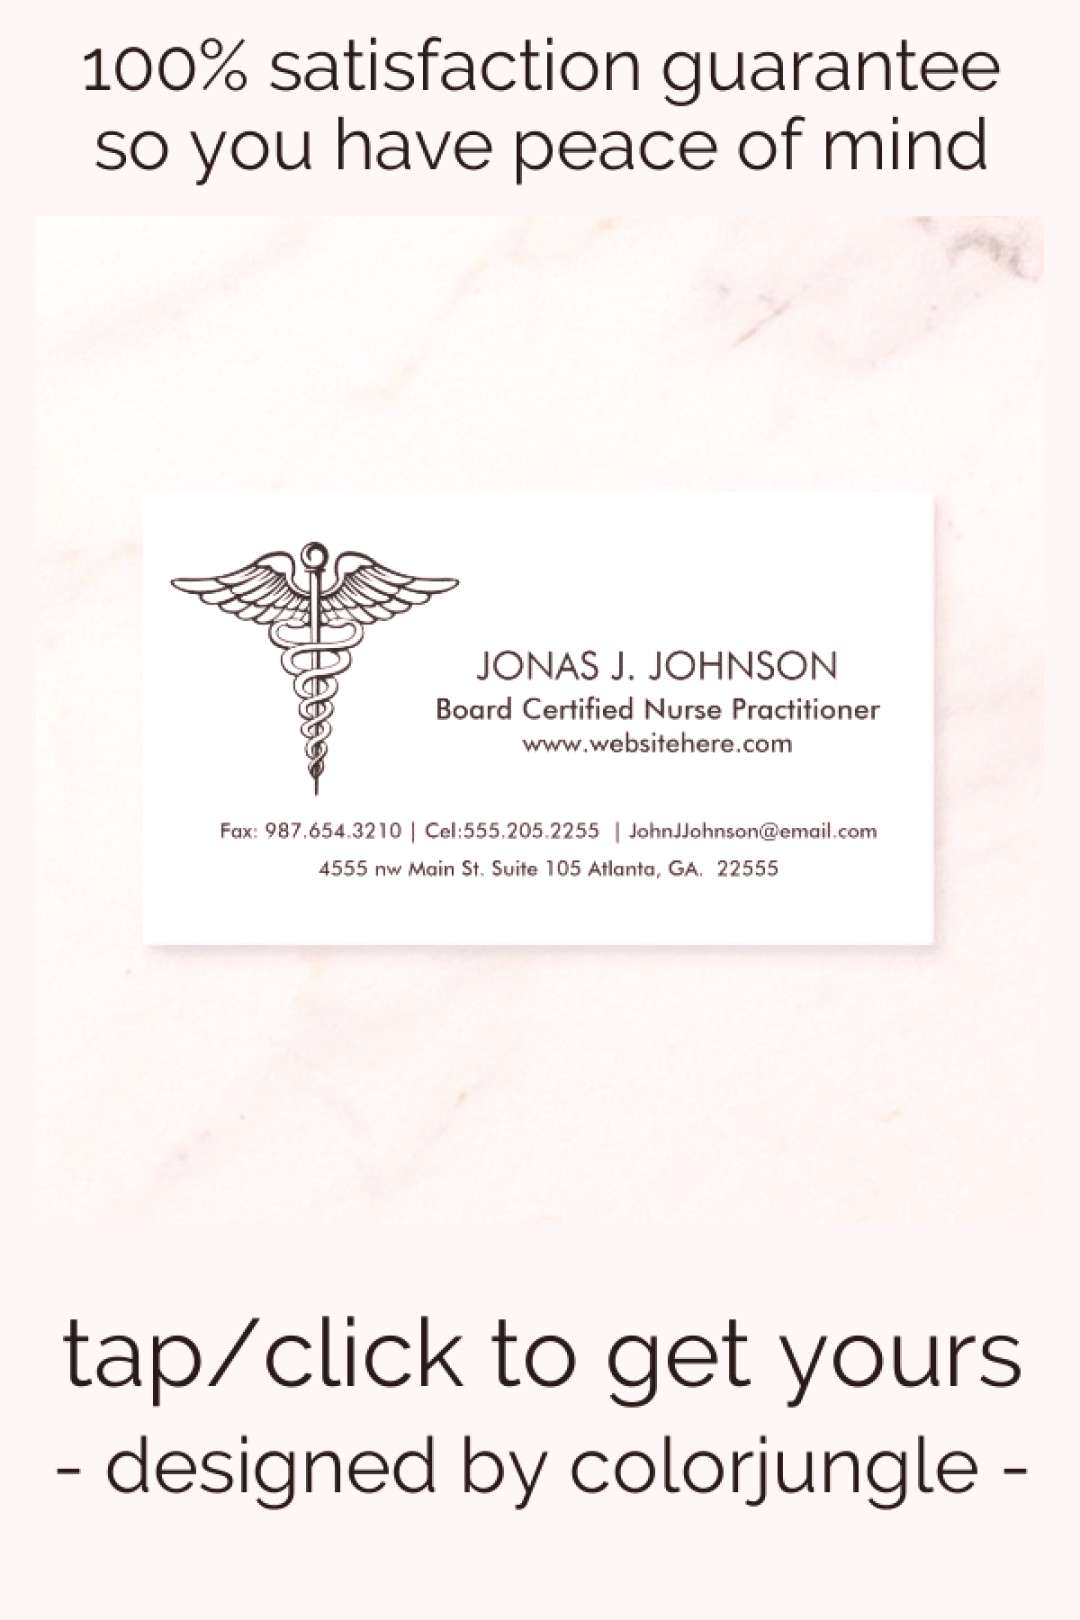 Clean and Professional Black and White Medical Business Card